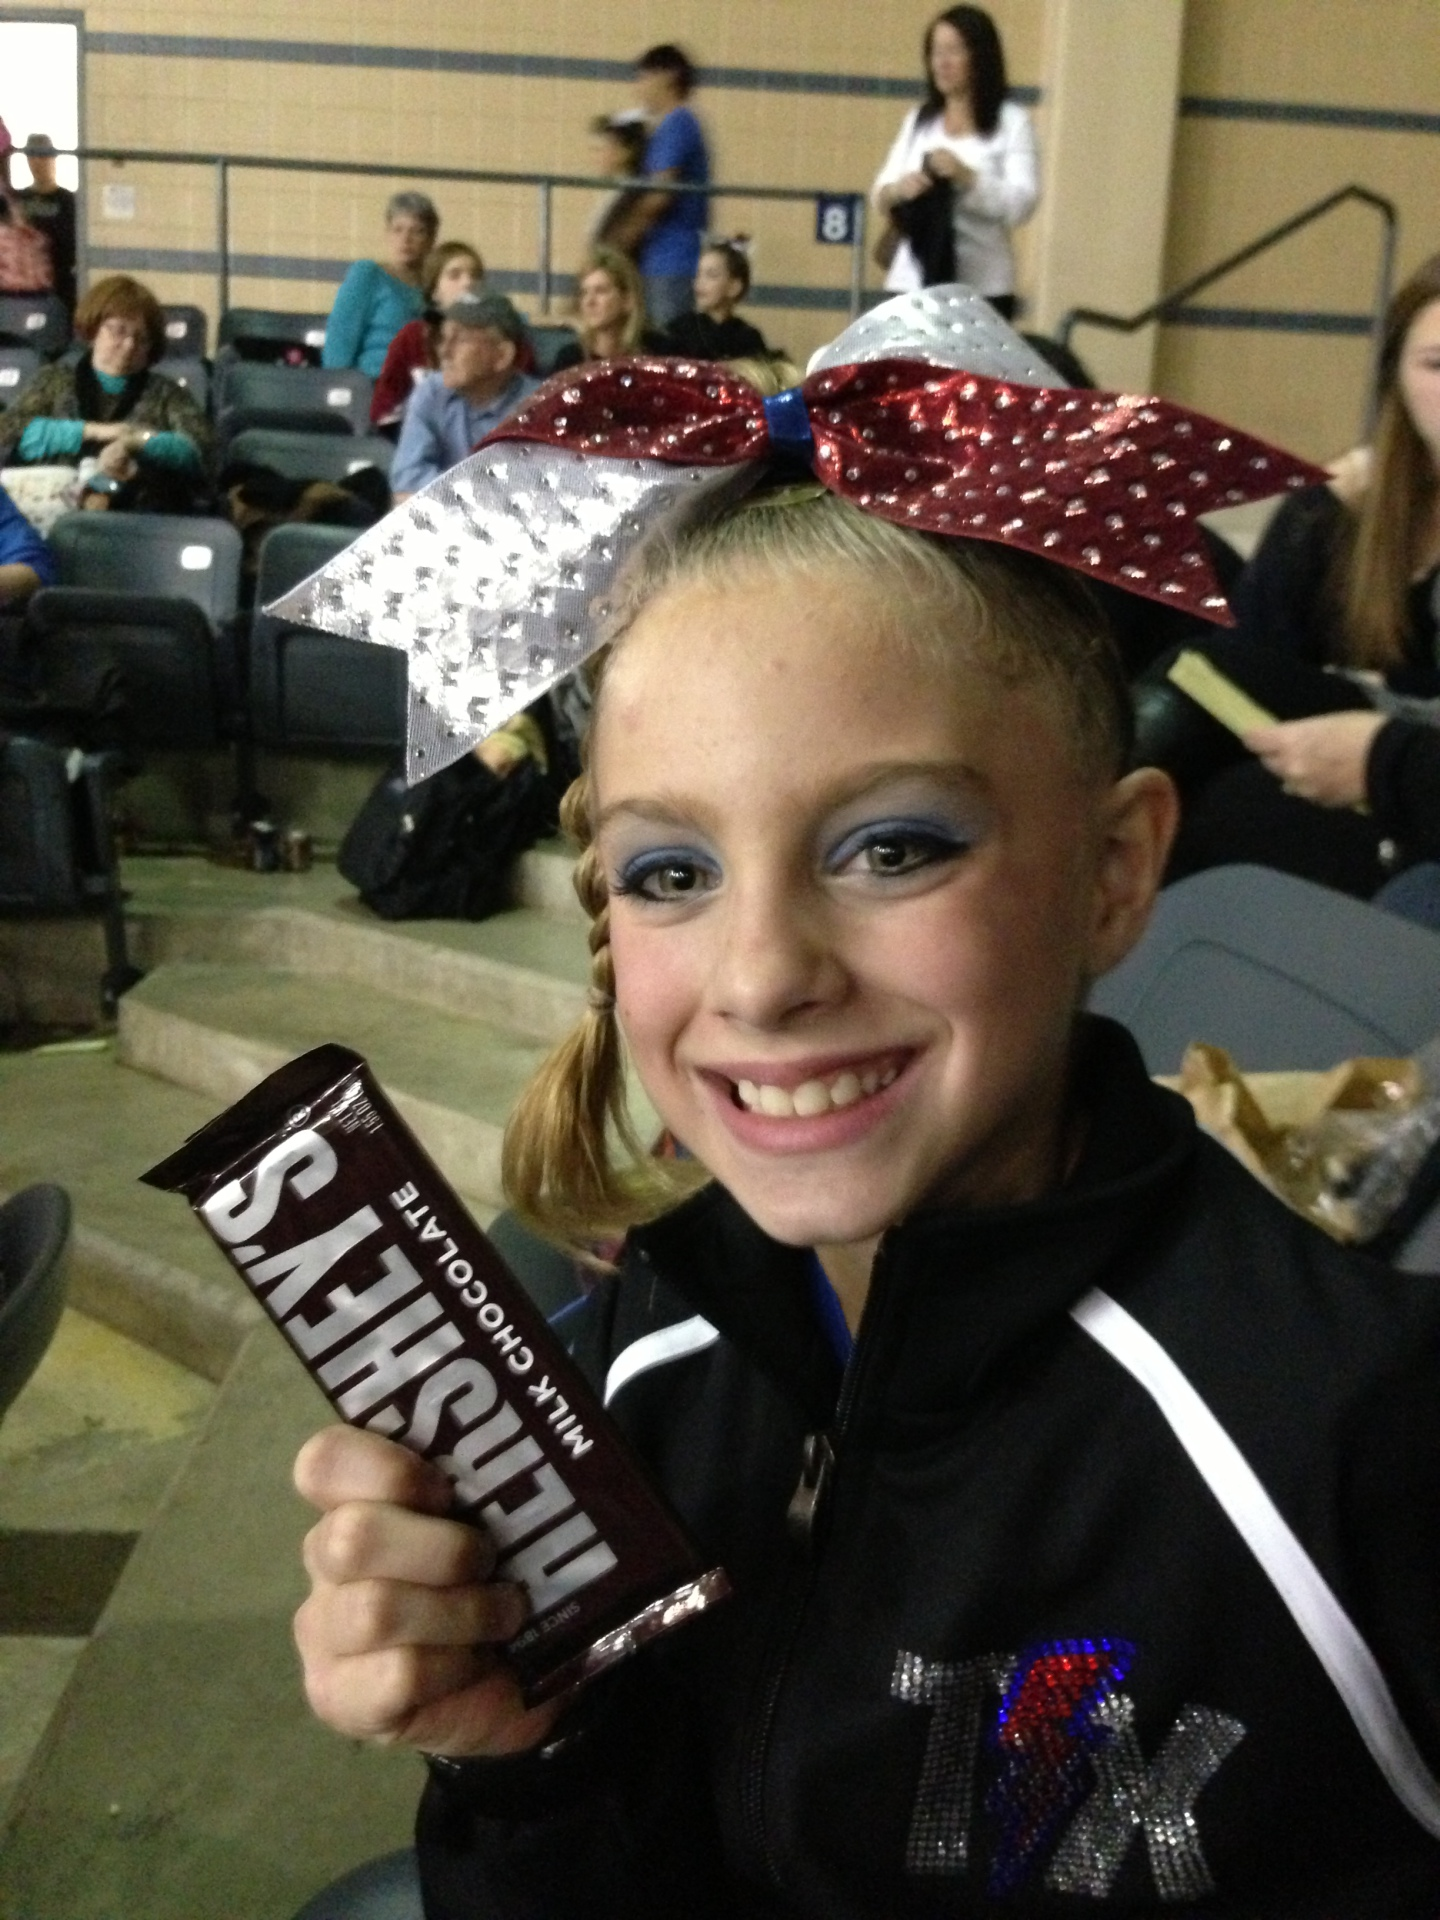 Cheer and Chocolate